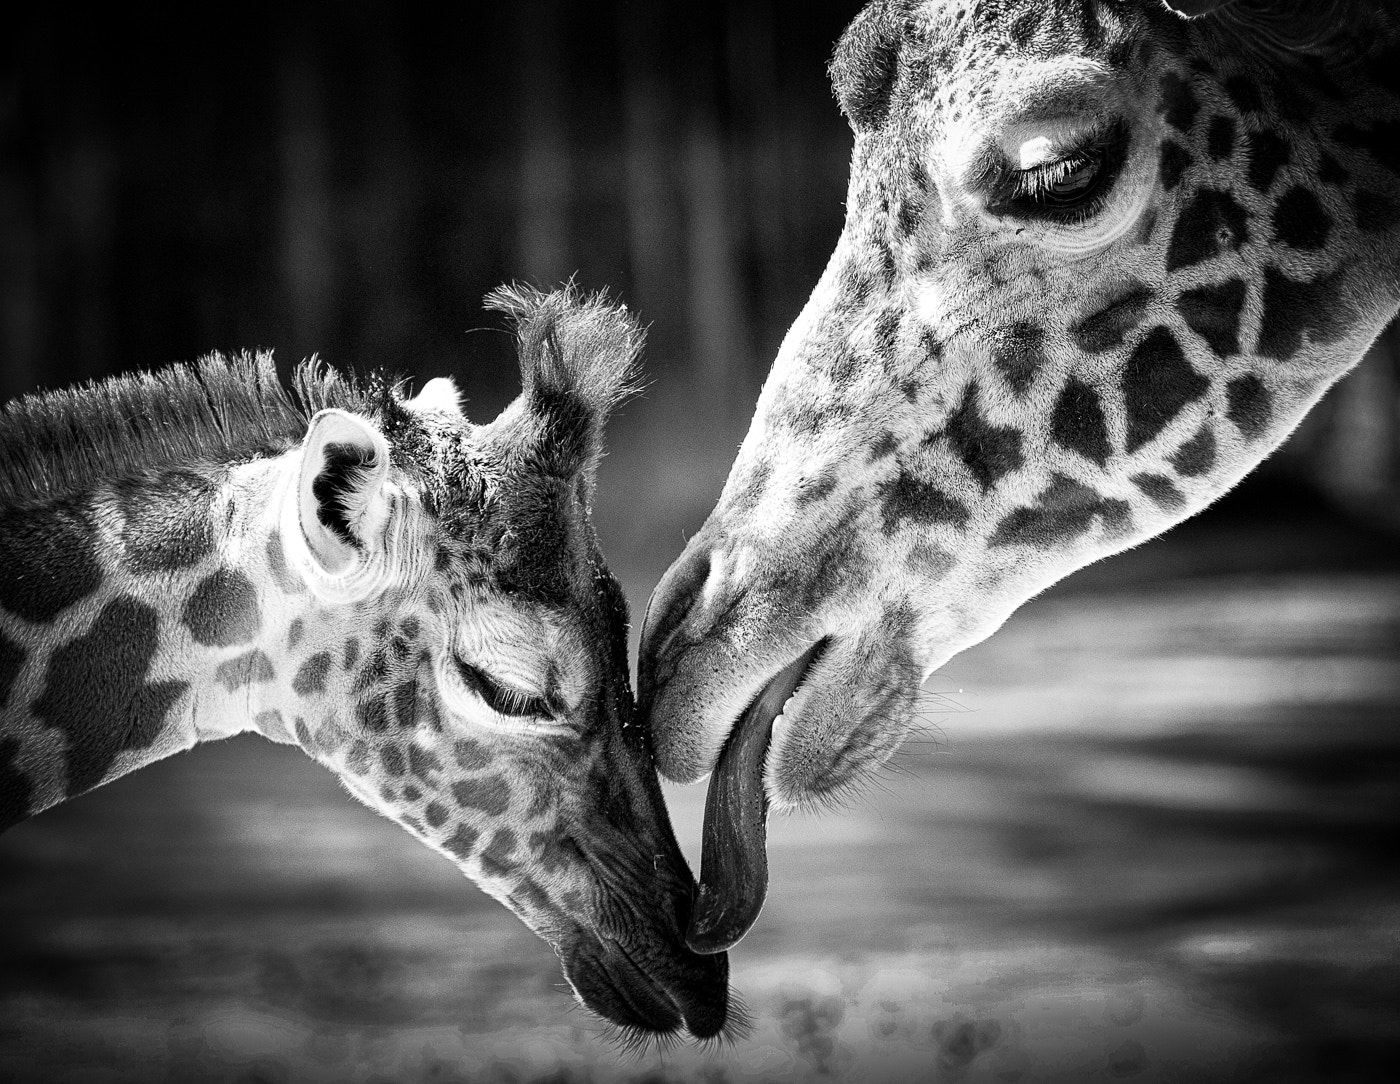 Photograph A Mother's Love by Carmody Baker on 500px